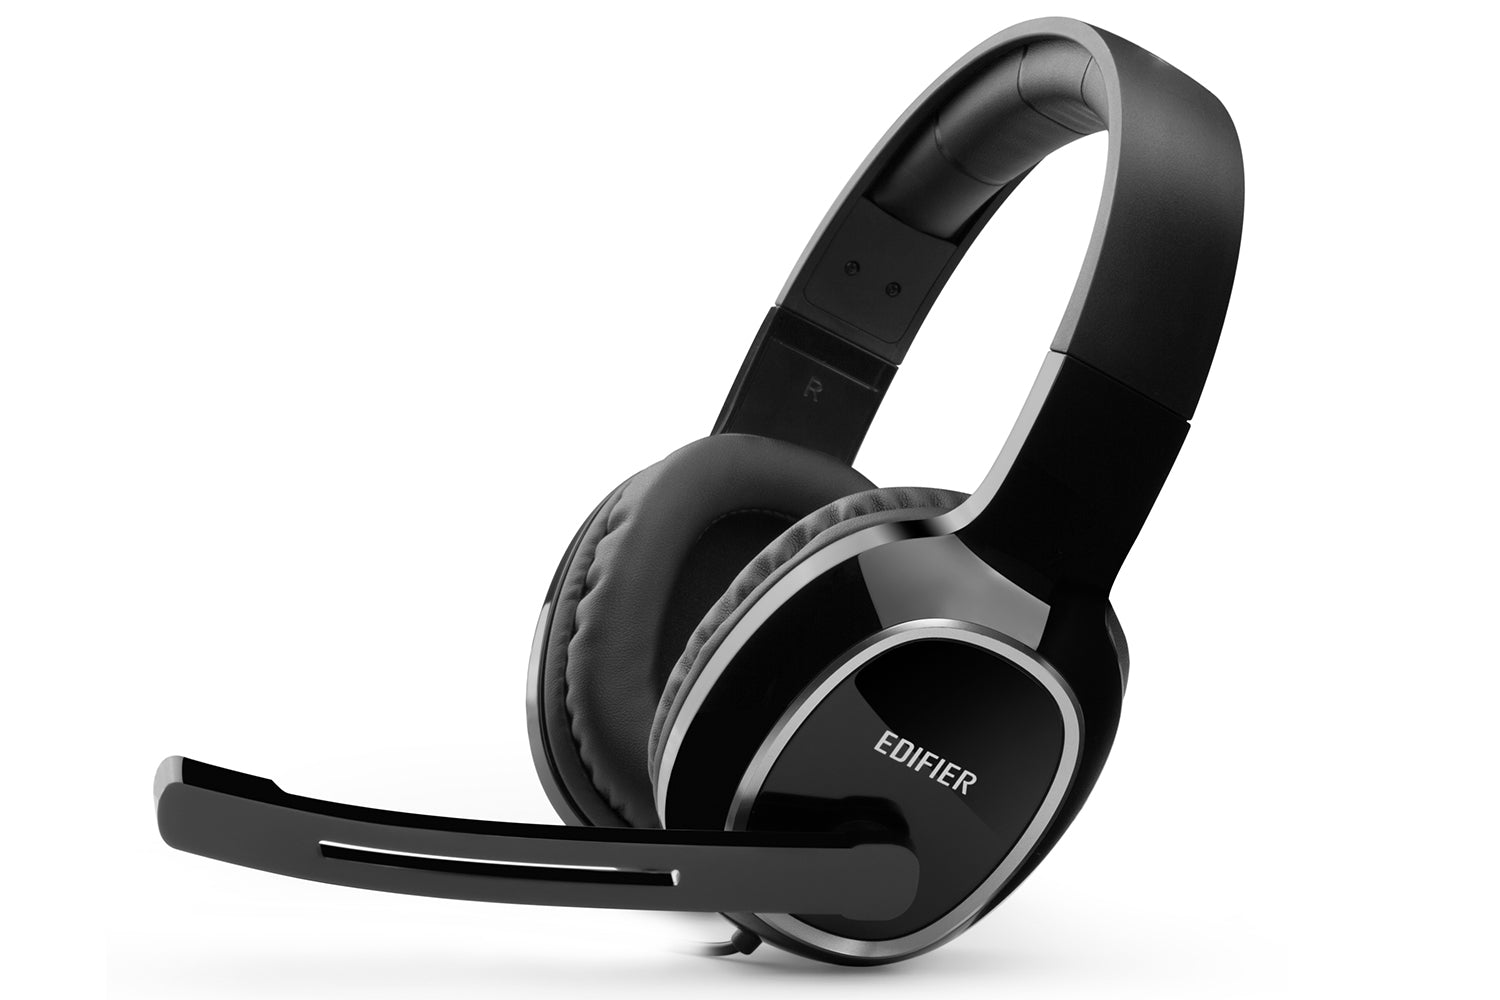 Edifier K815 Gaming Headset Headset With Microphone - Black - EDFR-HS-K815/BLK